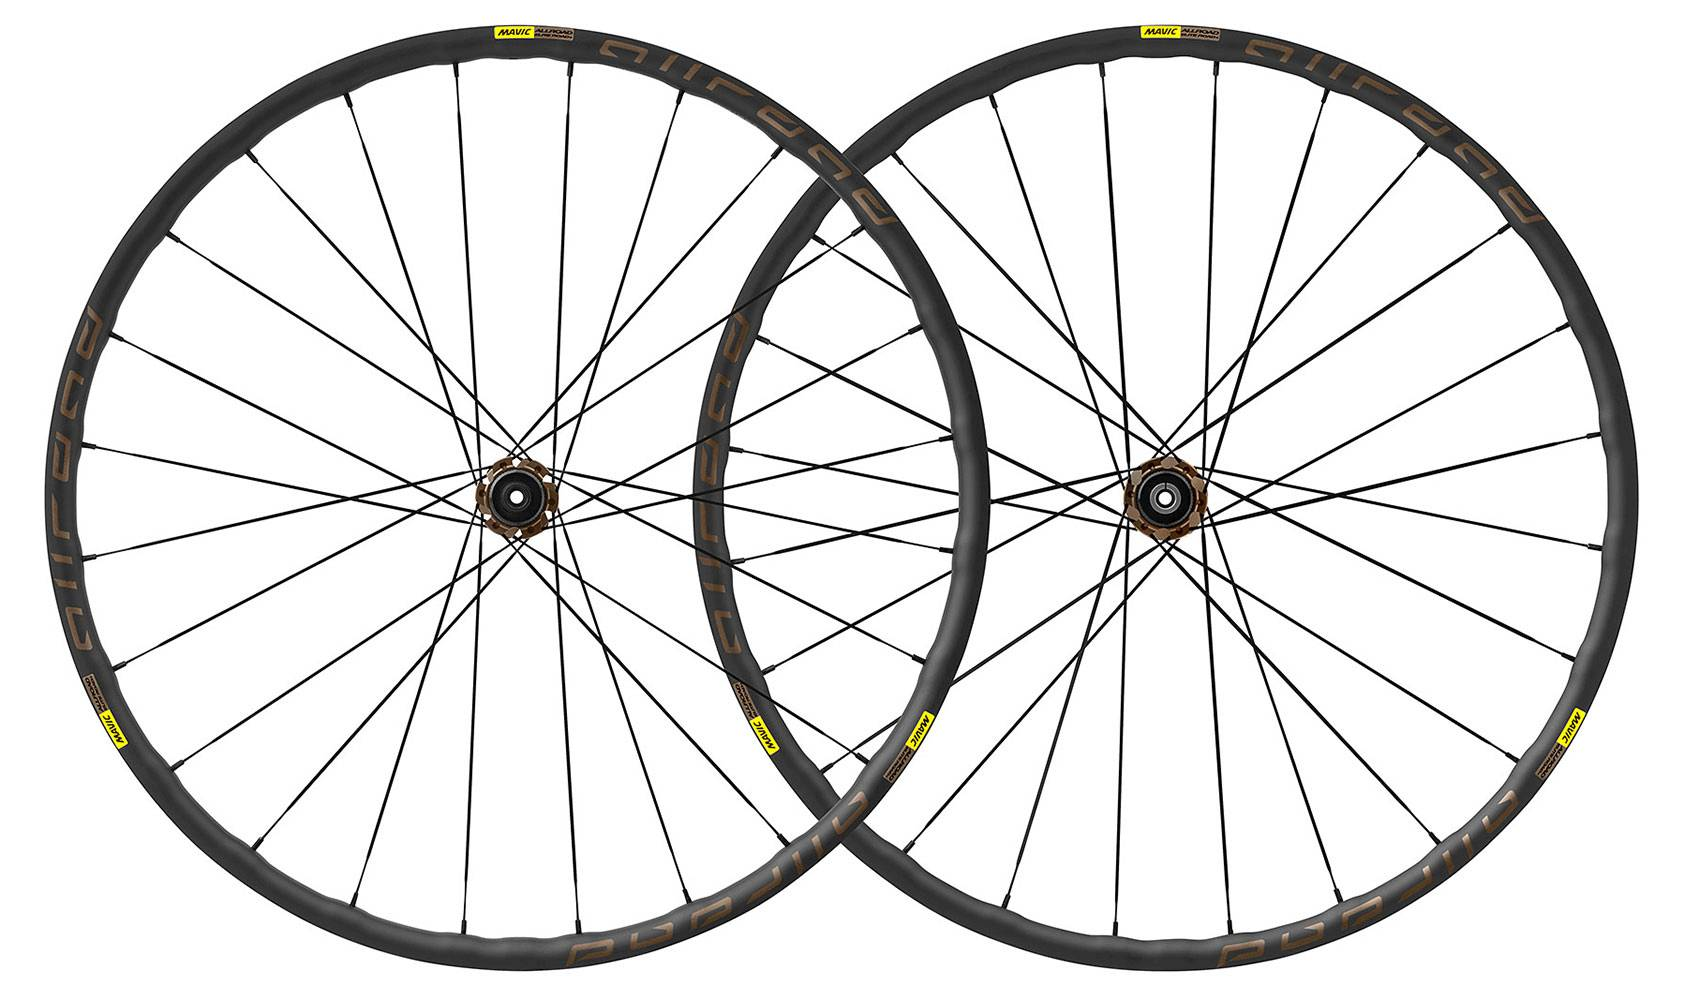 19 MAVIC Allroad Elite Road+ Pár (P8776155) Množ. Uni